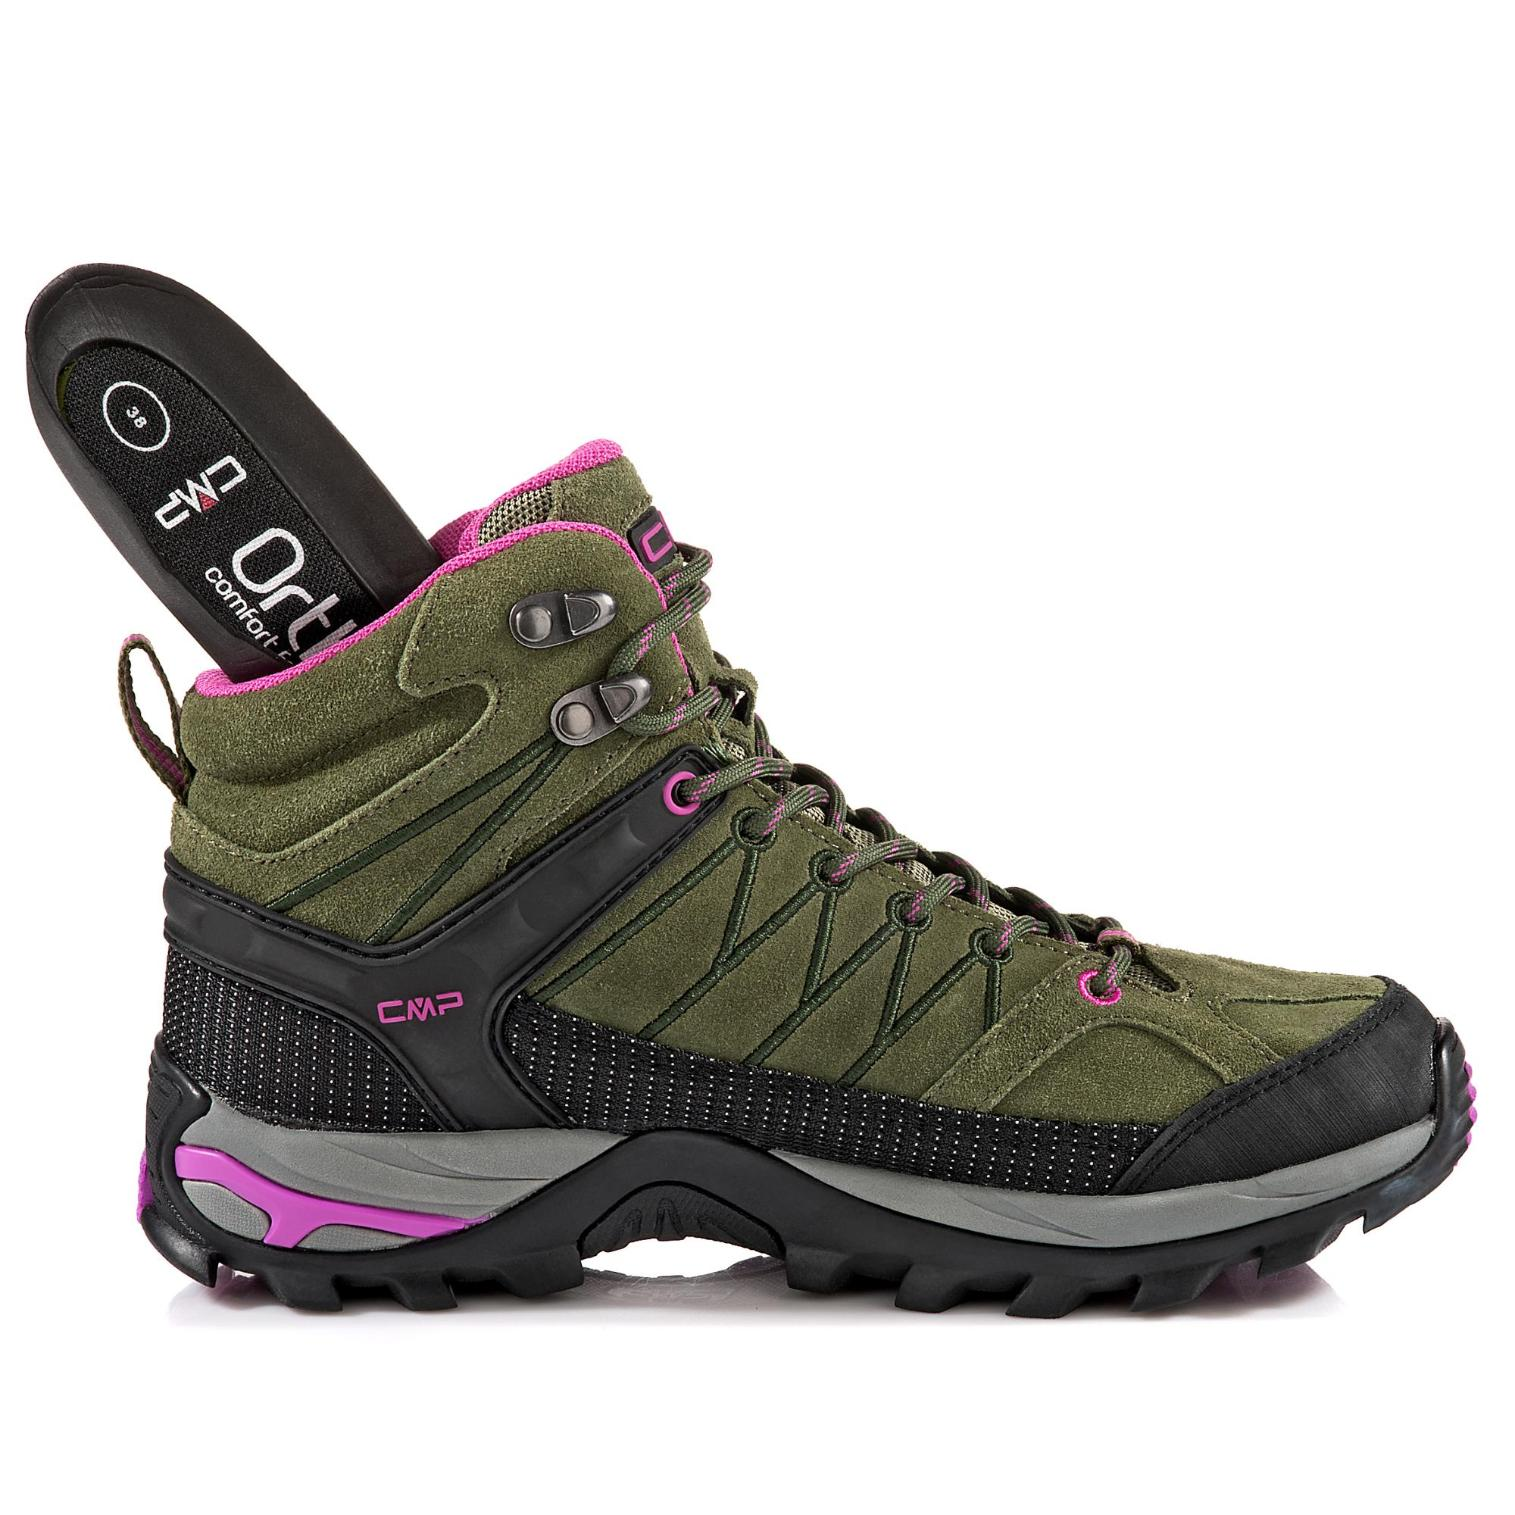 CMP Rigel Clima Protect online Wanderschuh in Farbe khaki/rosa günstig online Protect kaufen 7658aa